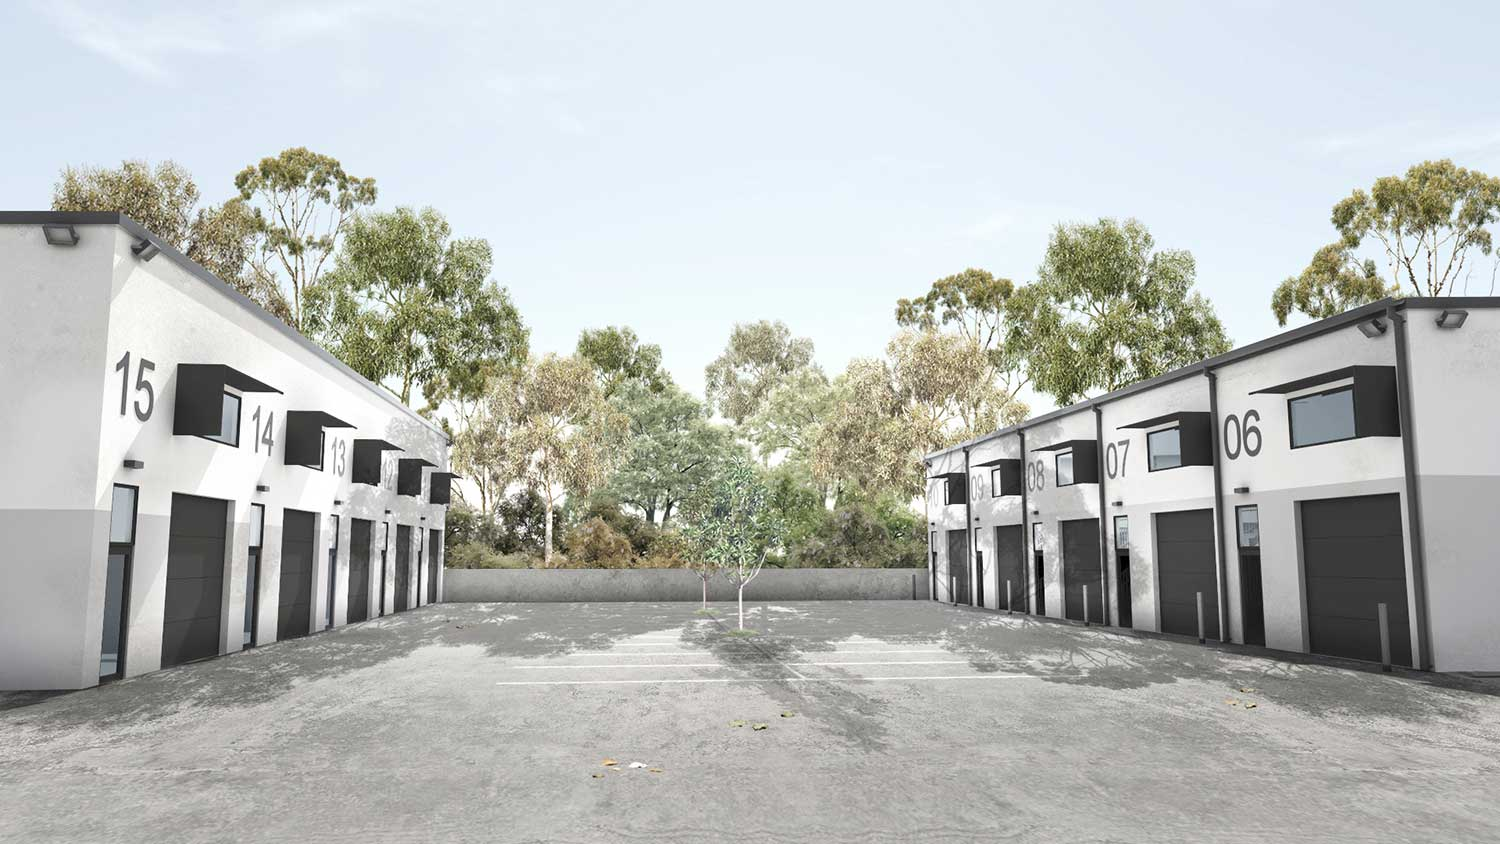 Industrial & Commercial Development, Highlands Spaces, Sembrano Design